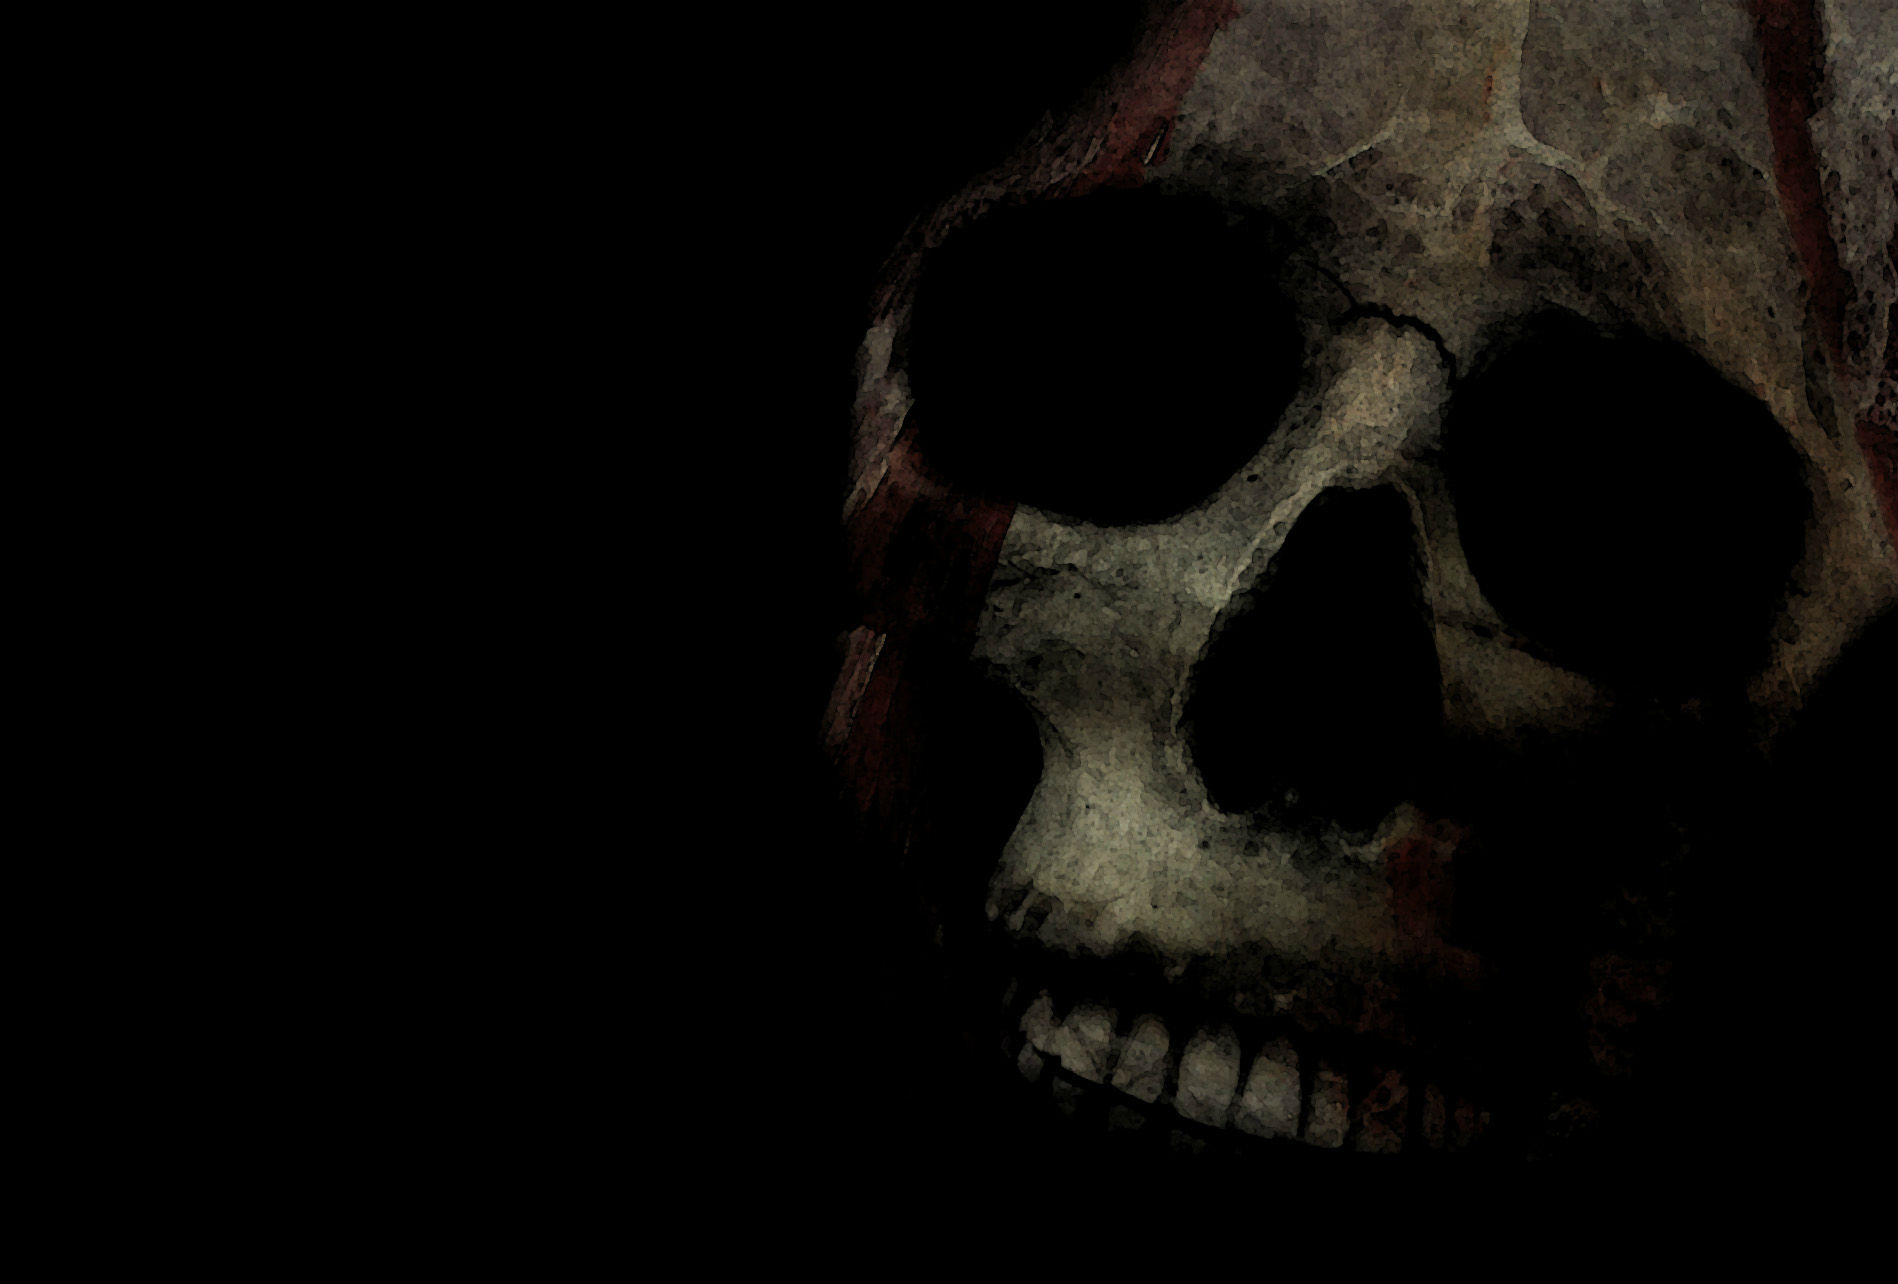 skull Wallpaper Background 21711 1898x1284